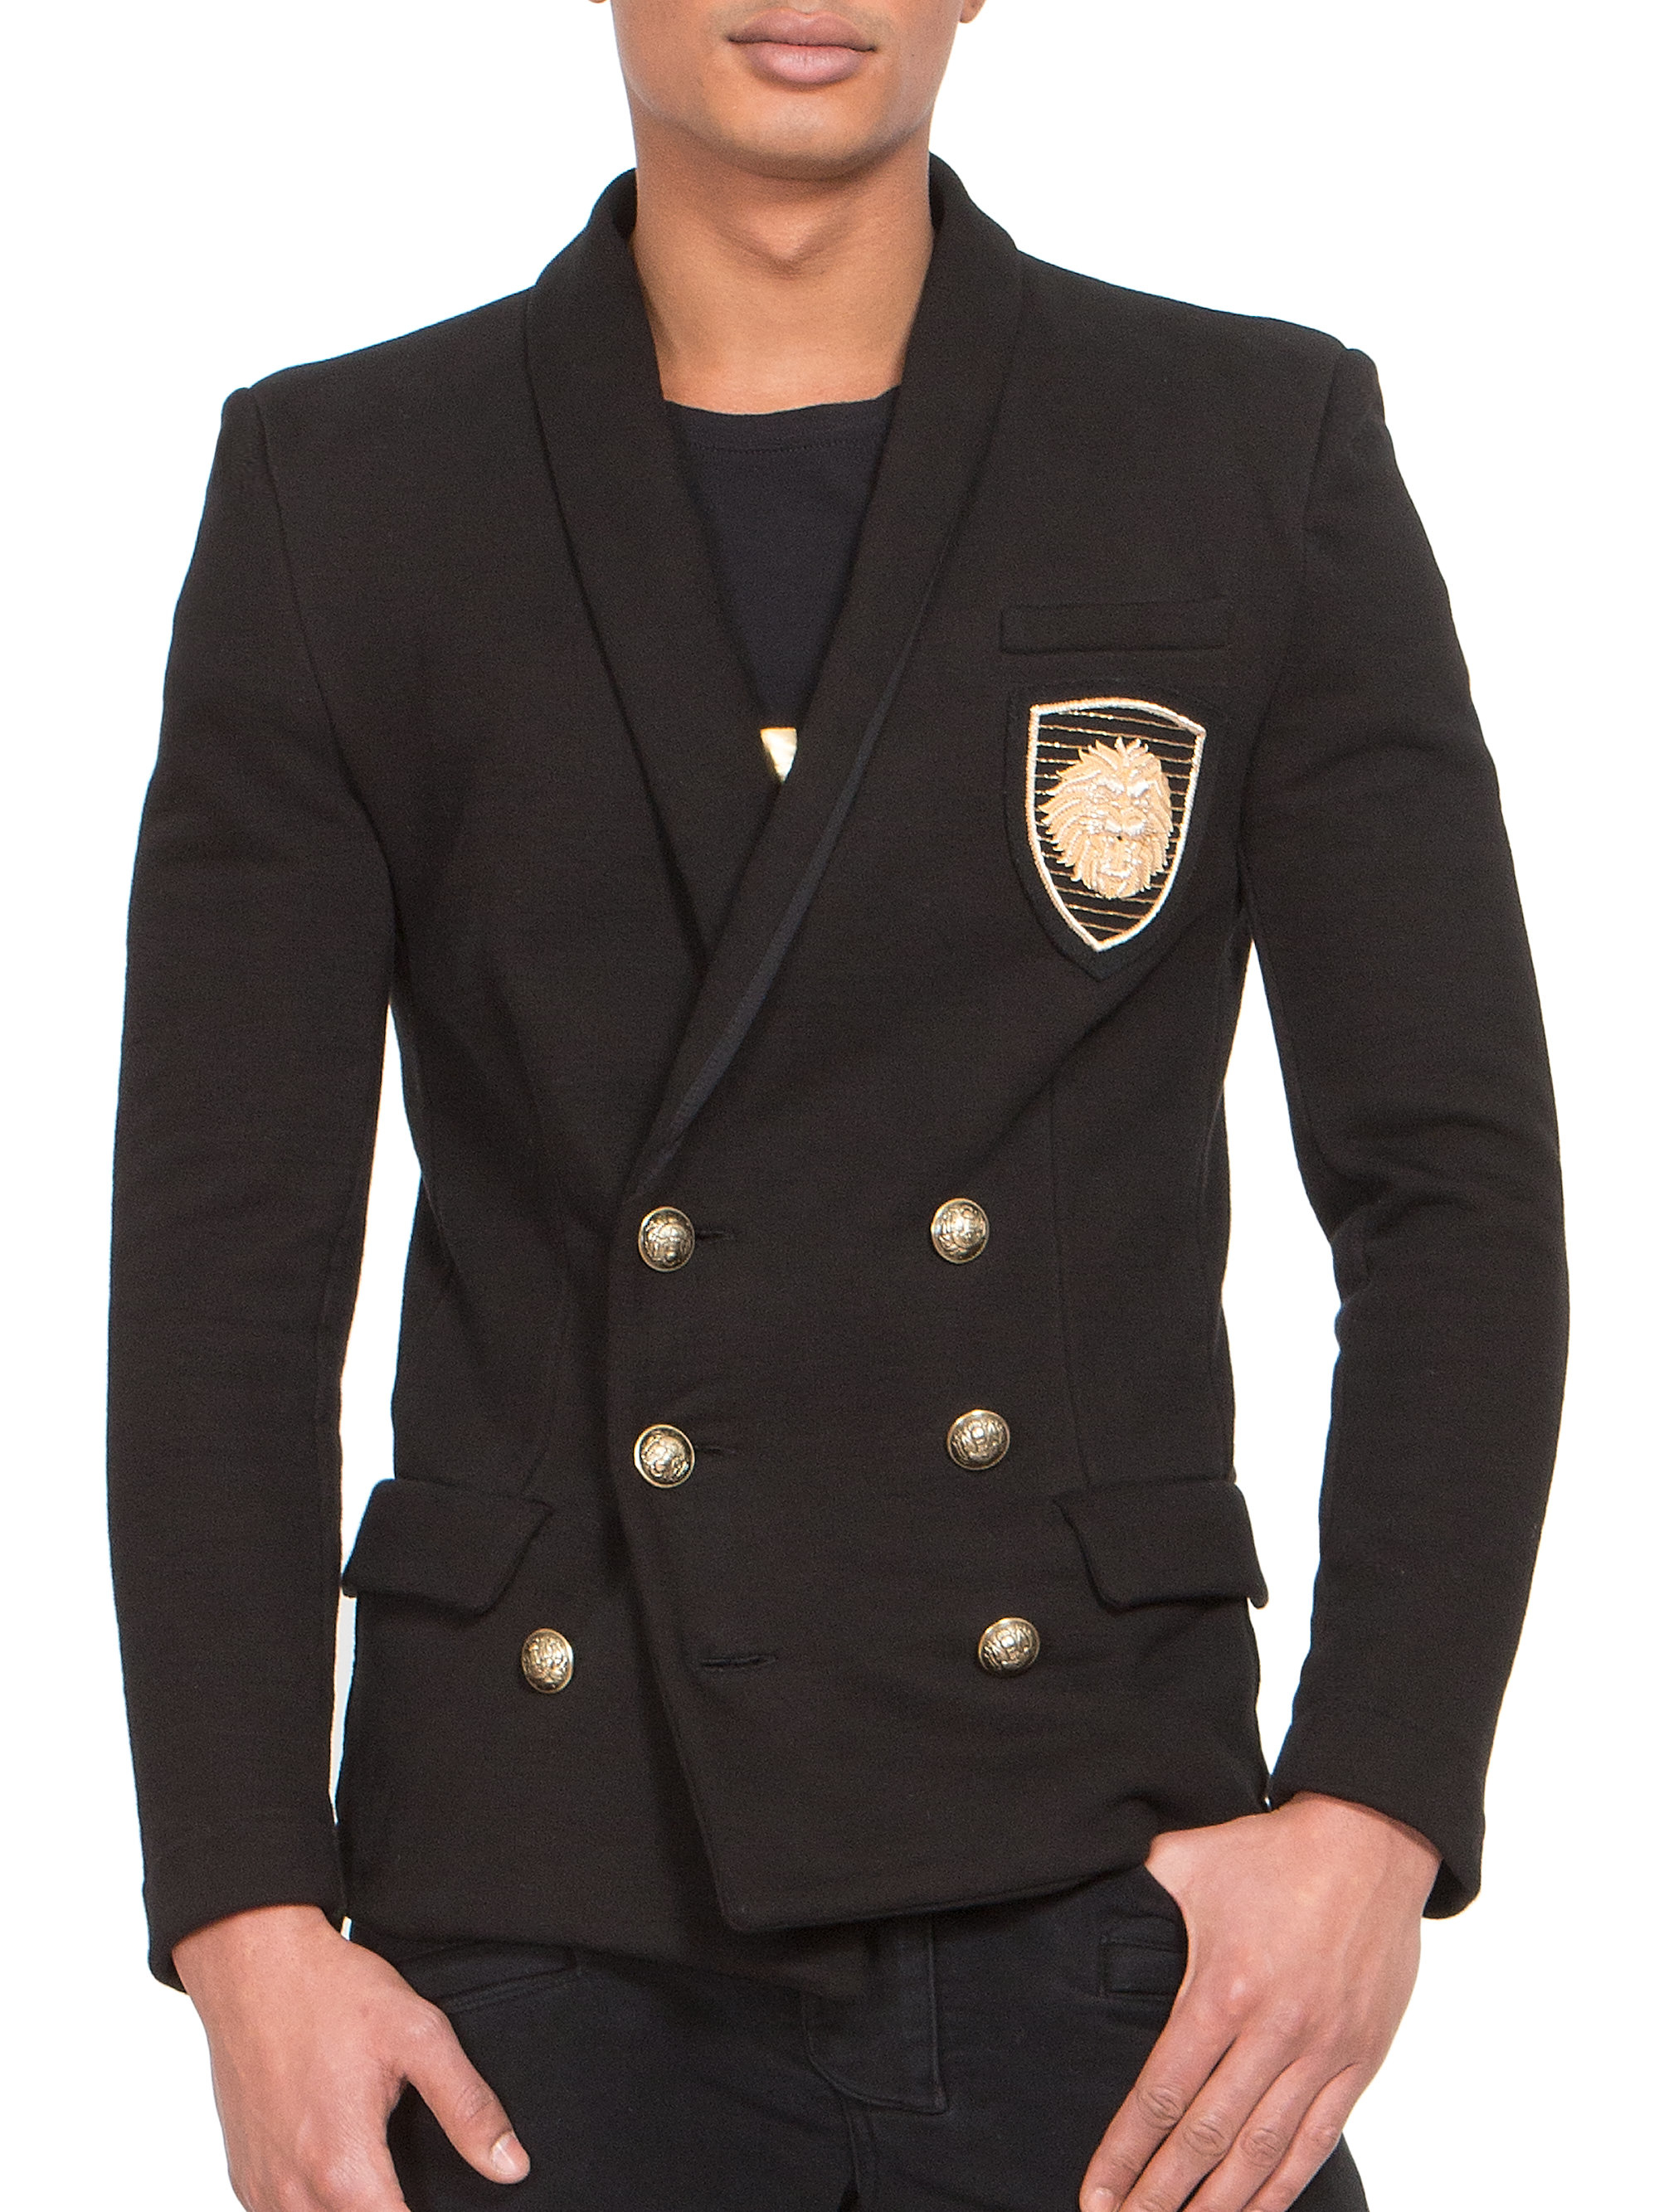 Balmain Dress Price | White Blazer Gold Buttons | Balmain Double Breasted Blazer